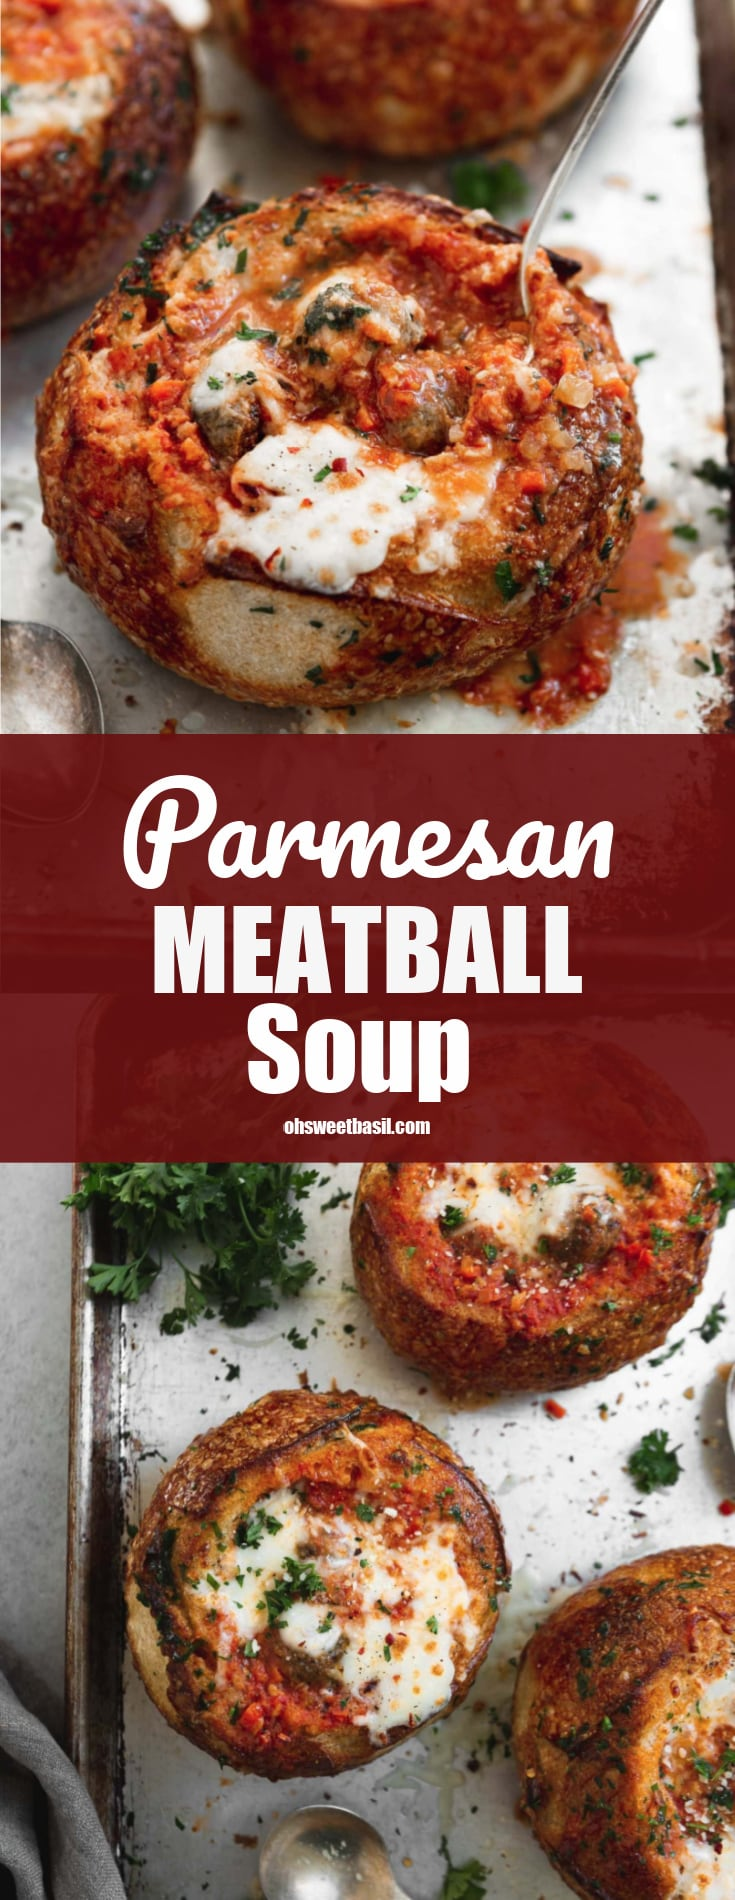 A bread bowl filled with parmesan meatball soup. The bread bowl and soup have been baked to a perfect toasty brown and the cheese on top is gooey melted perfection.